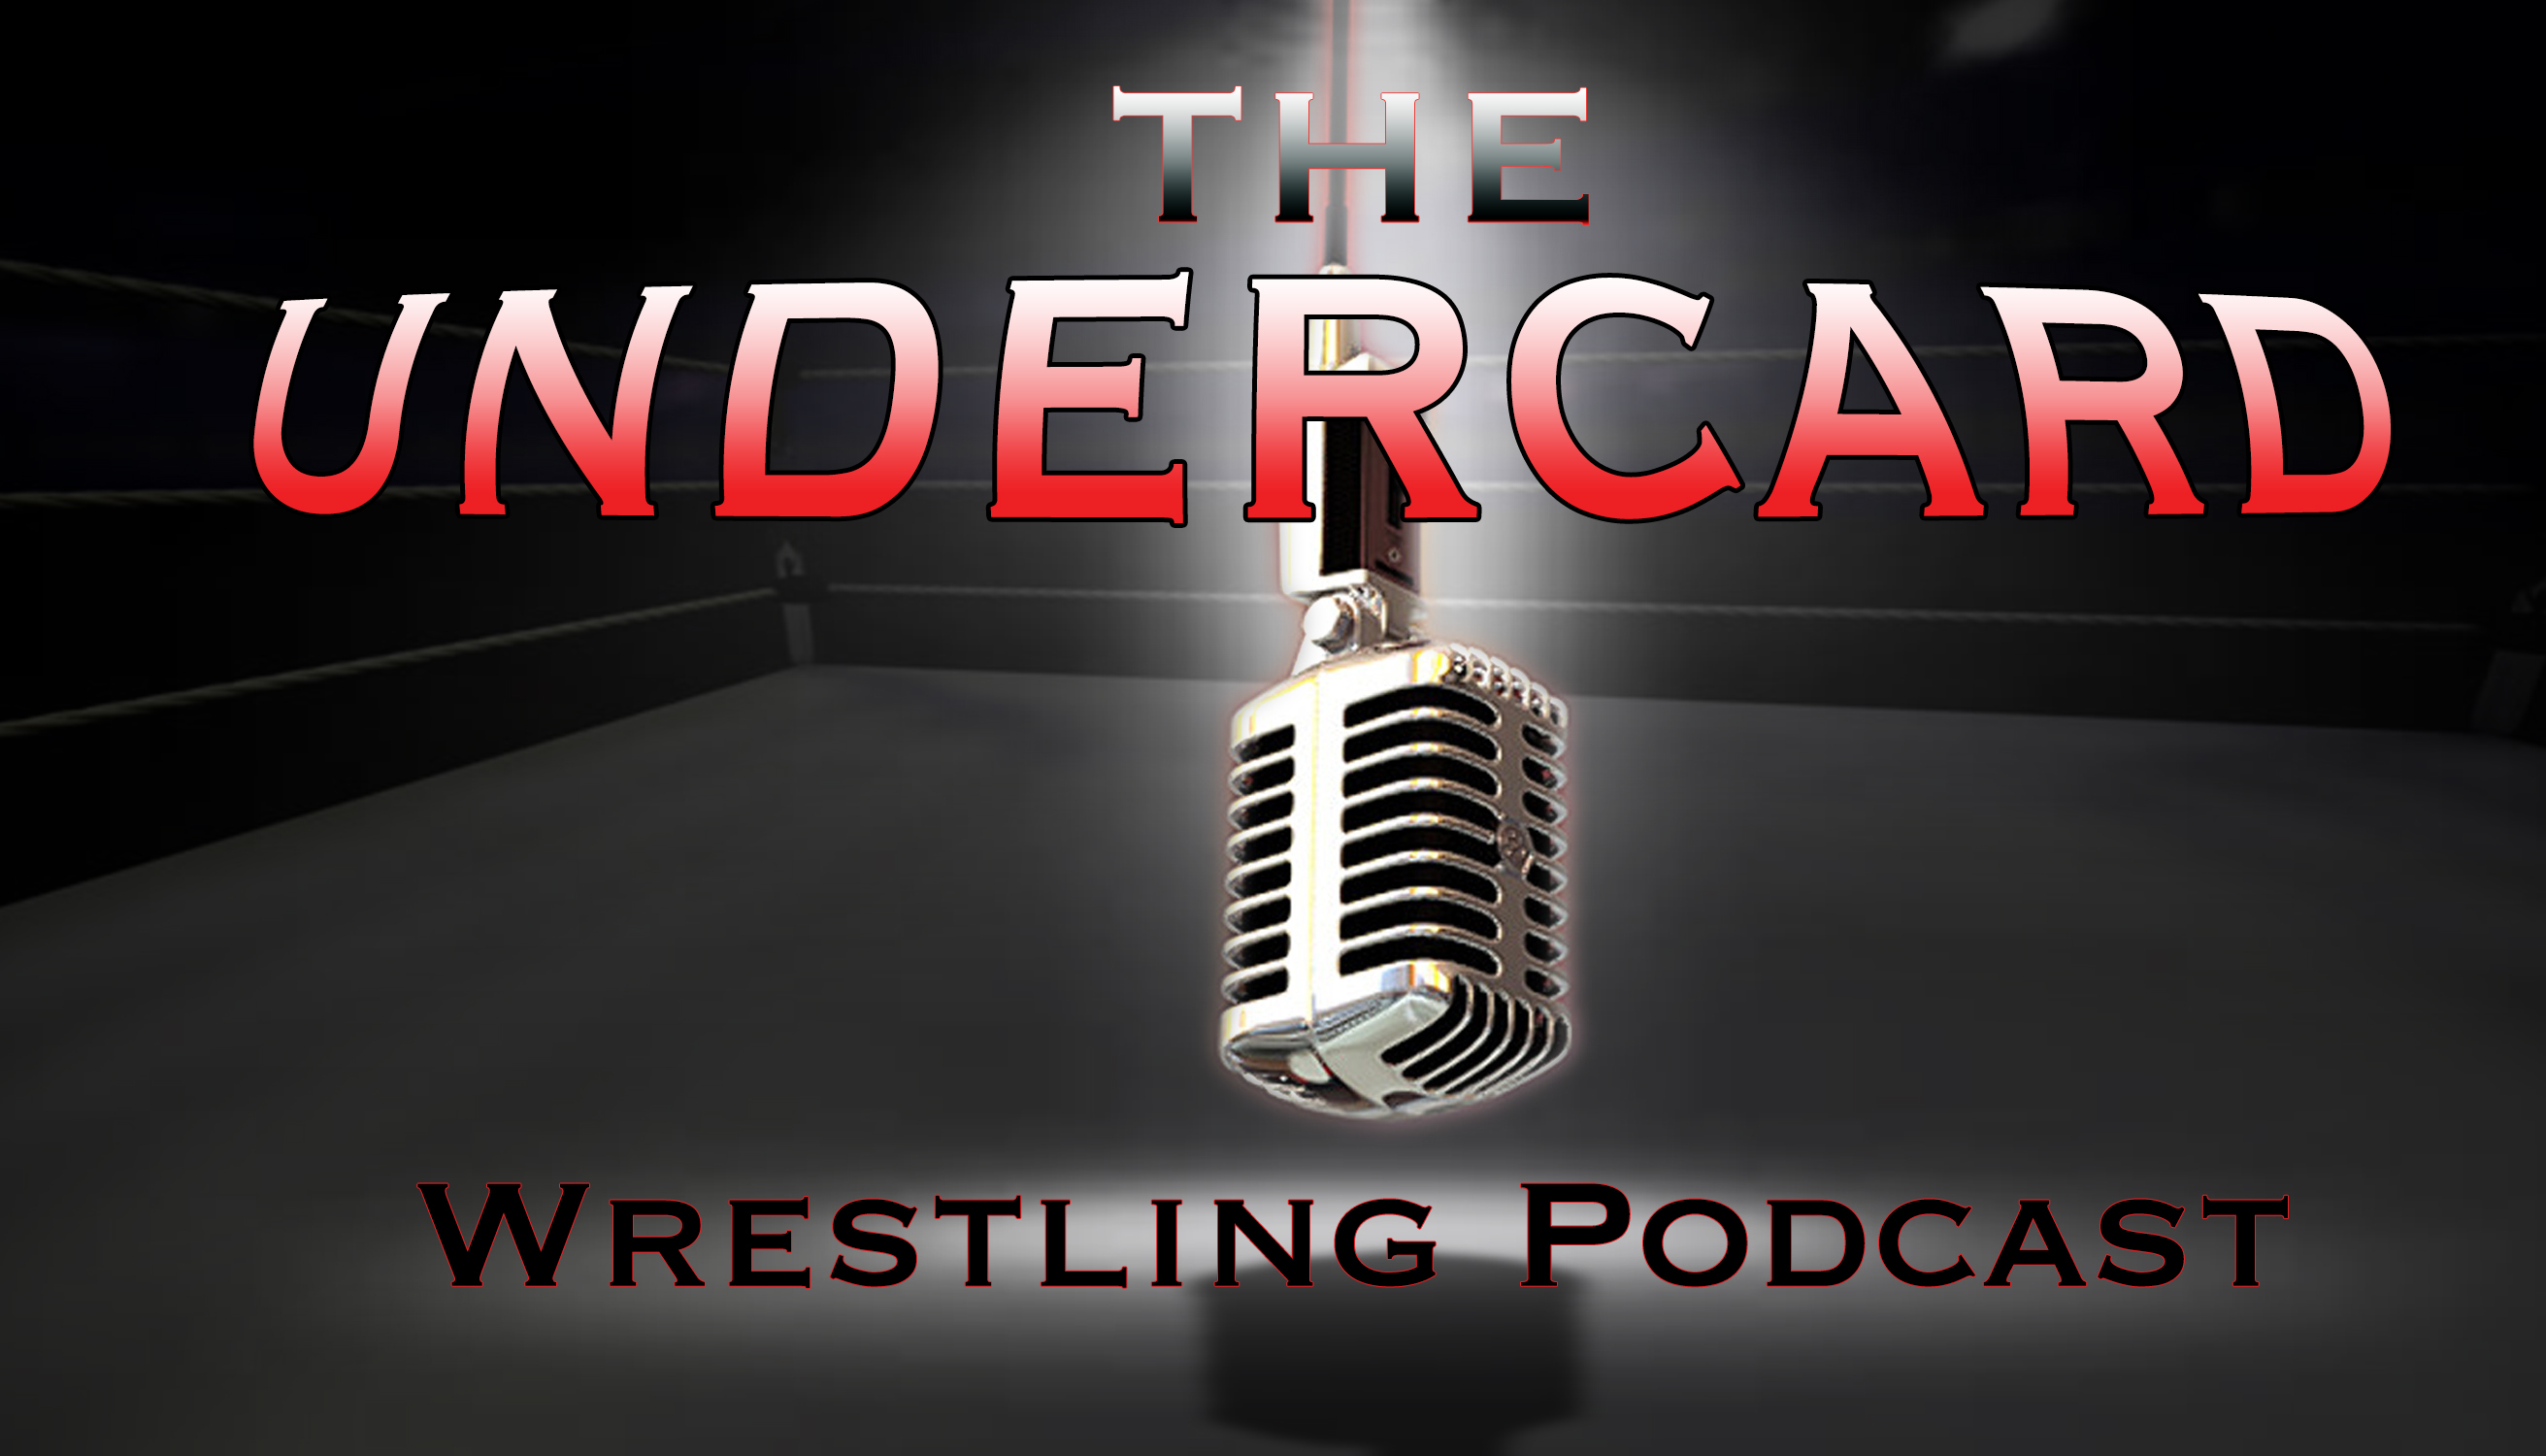 The Undercard Wrestling Podcast show art